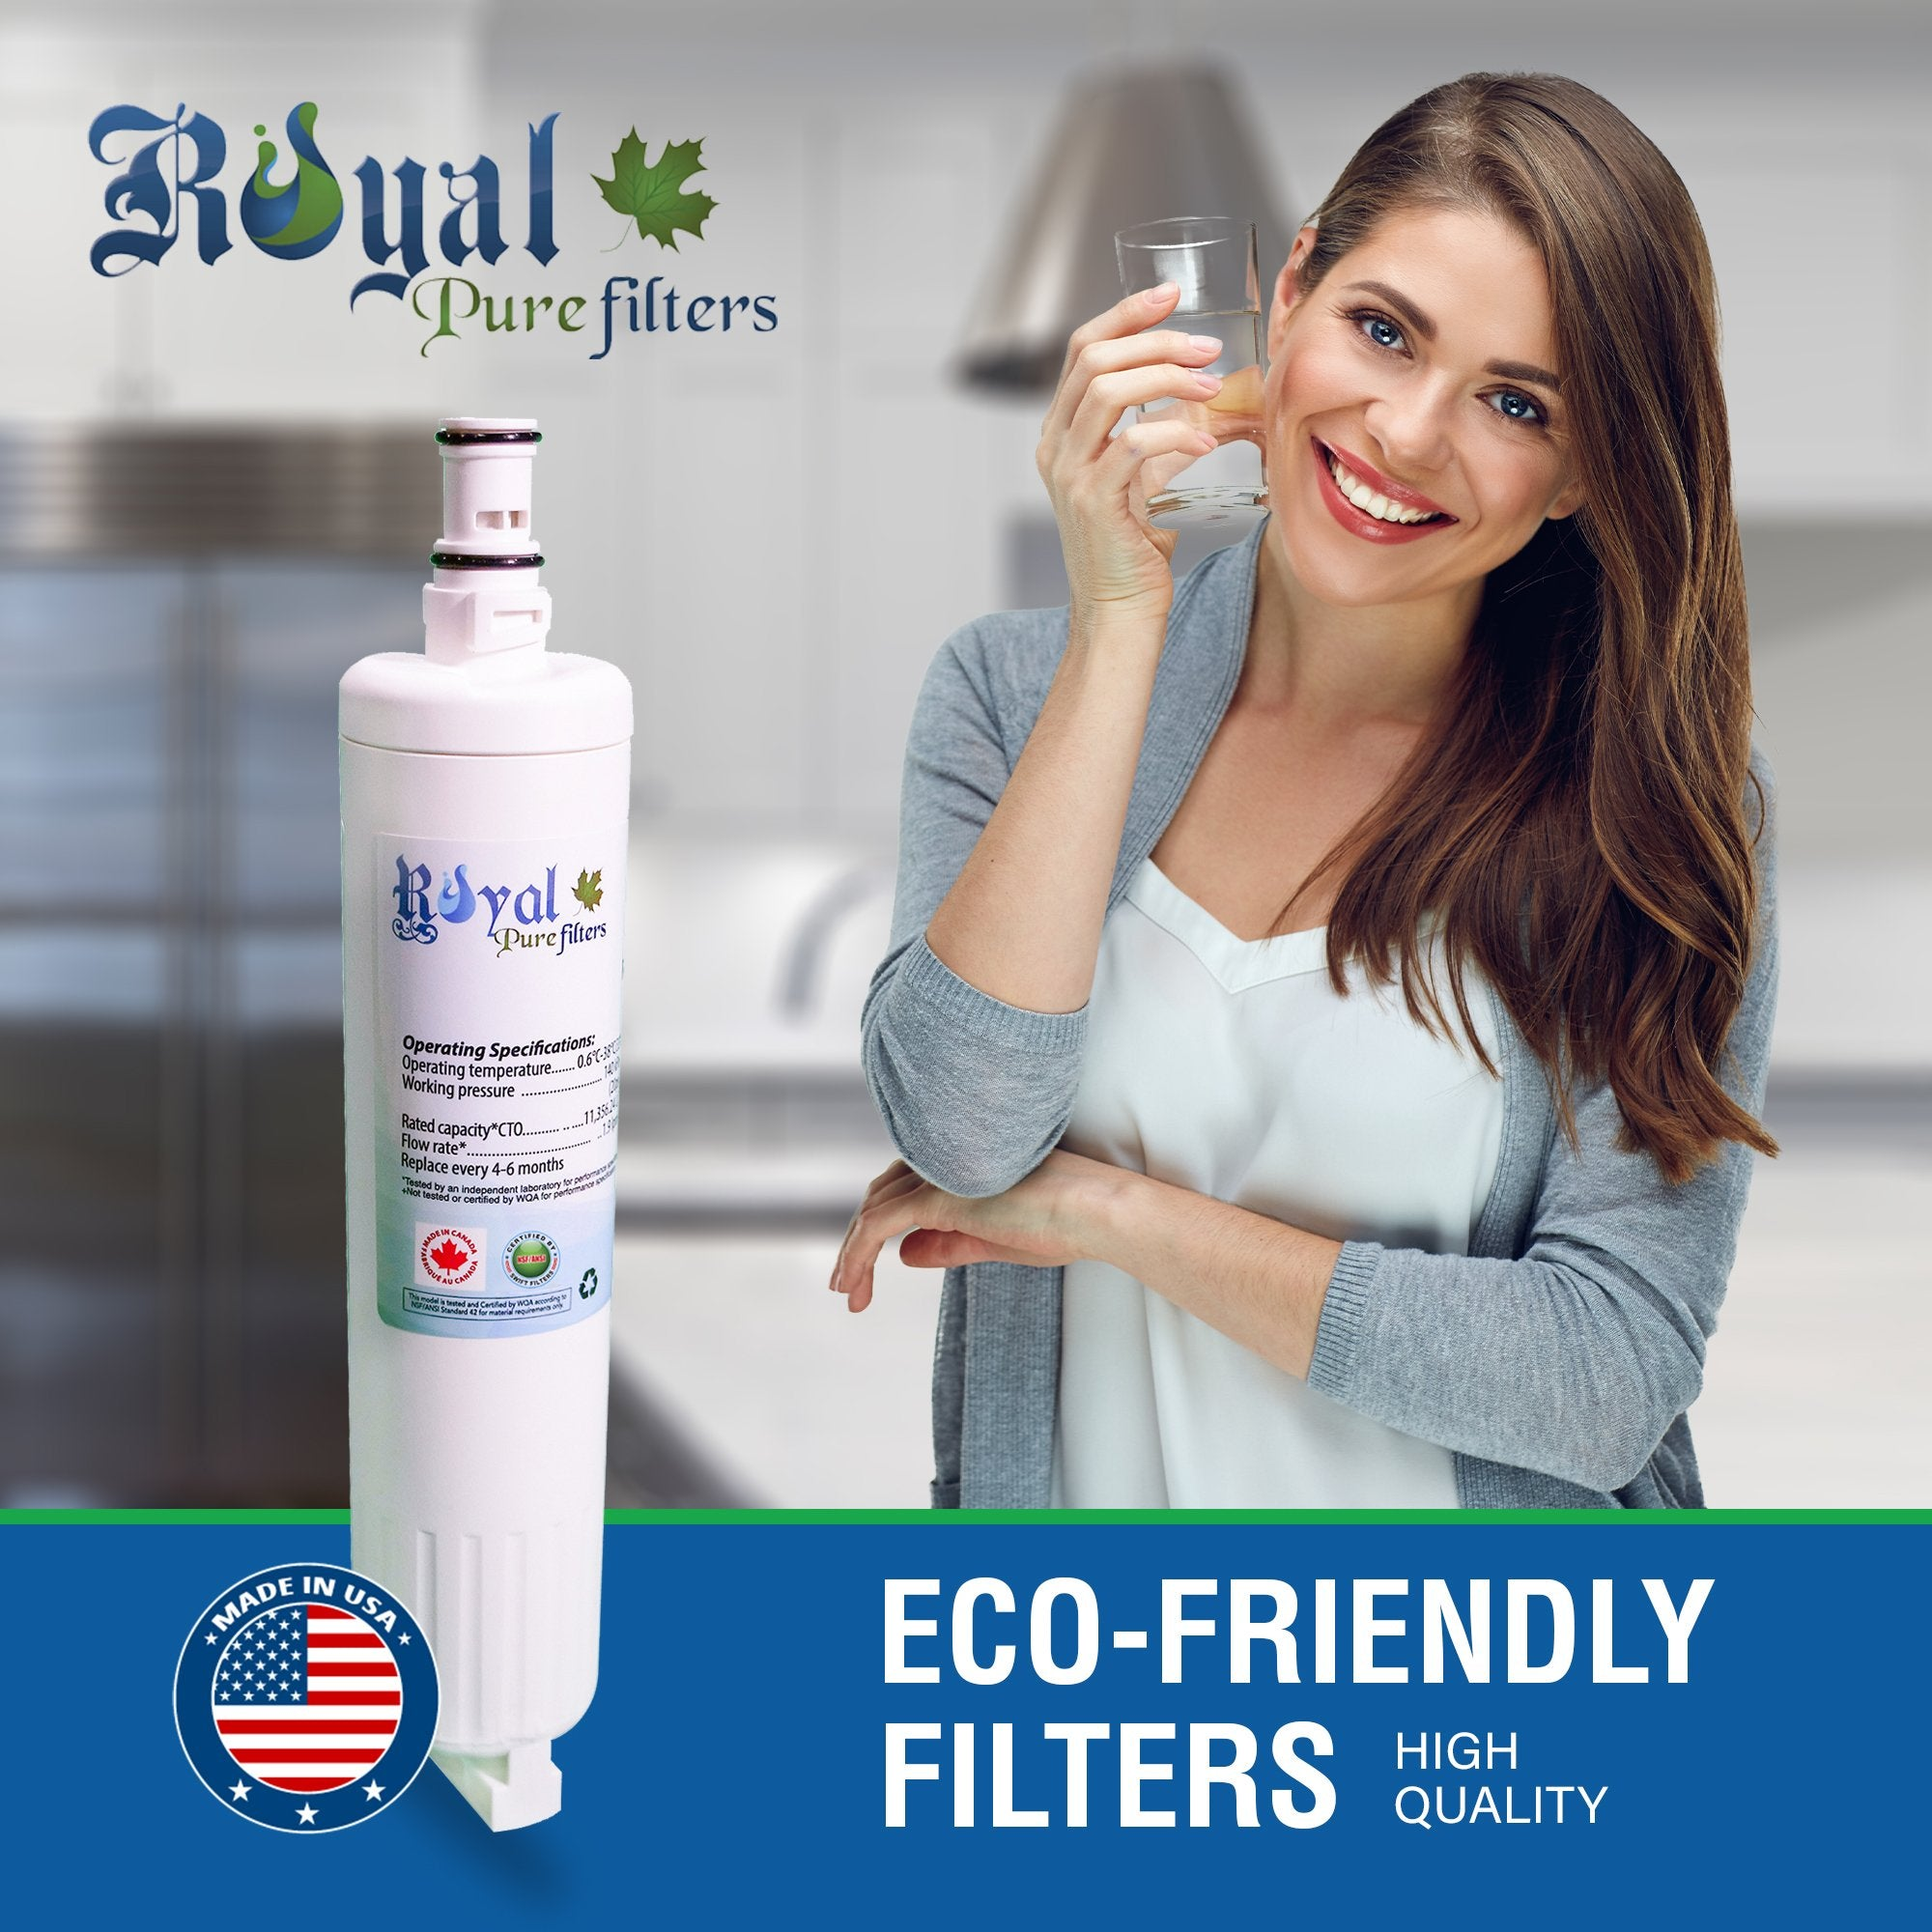 EveryDrop EDR5RXD1 Compatible CTO Refrigerator Water Filter